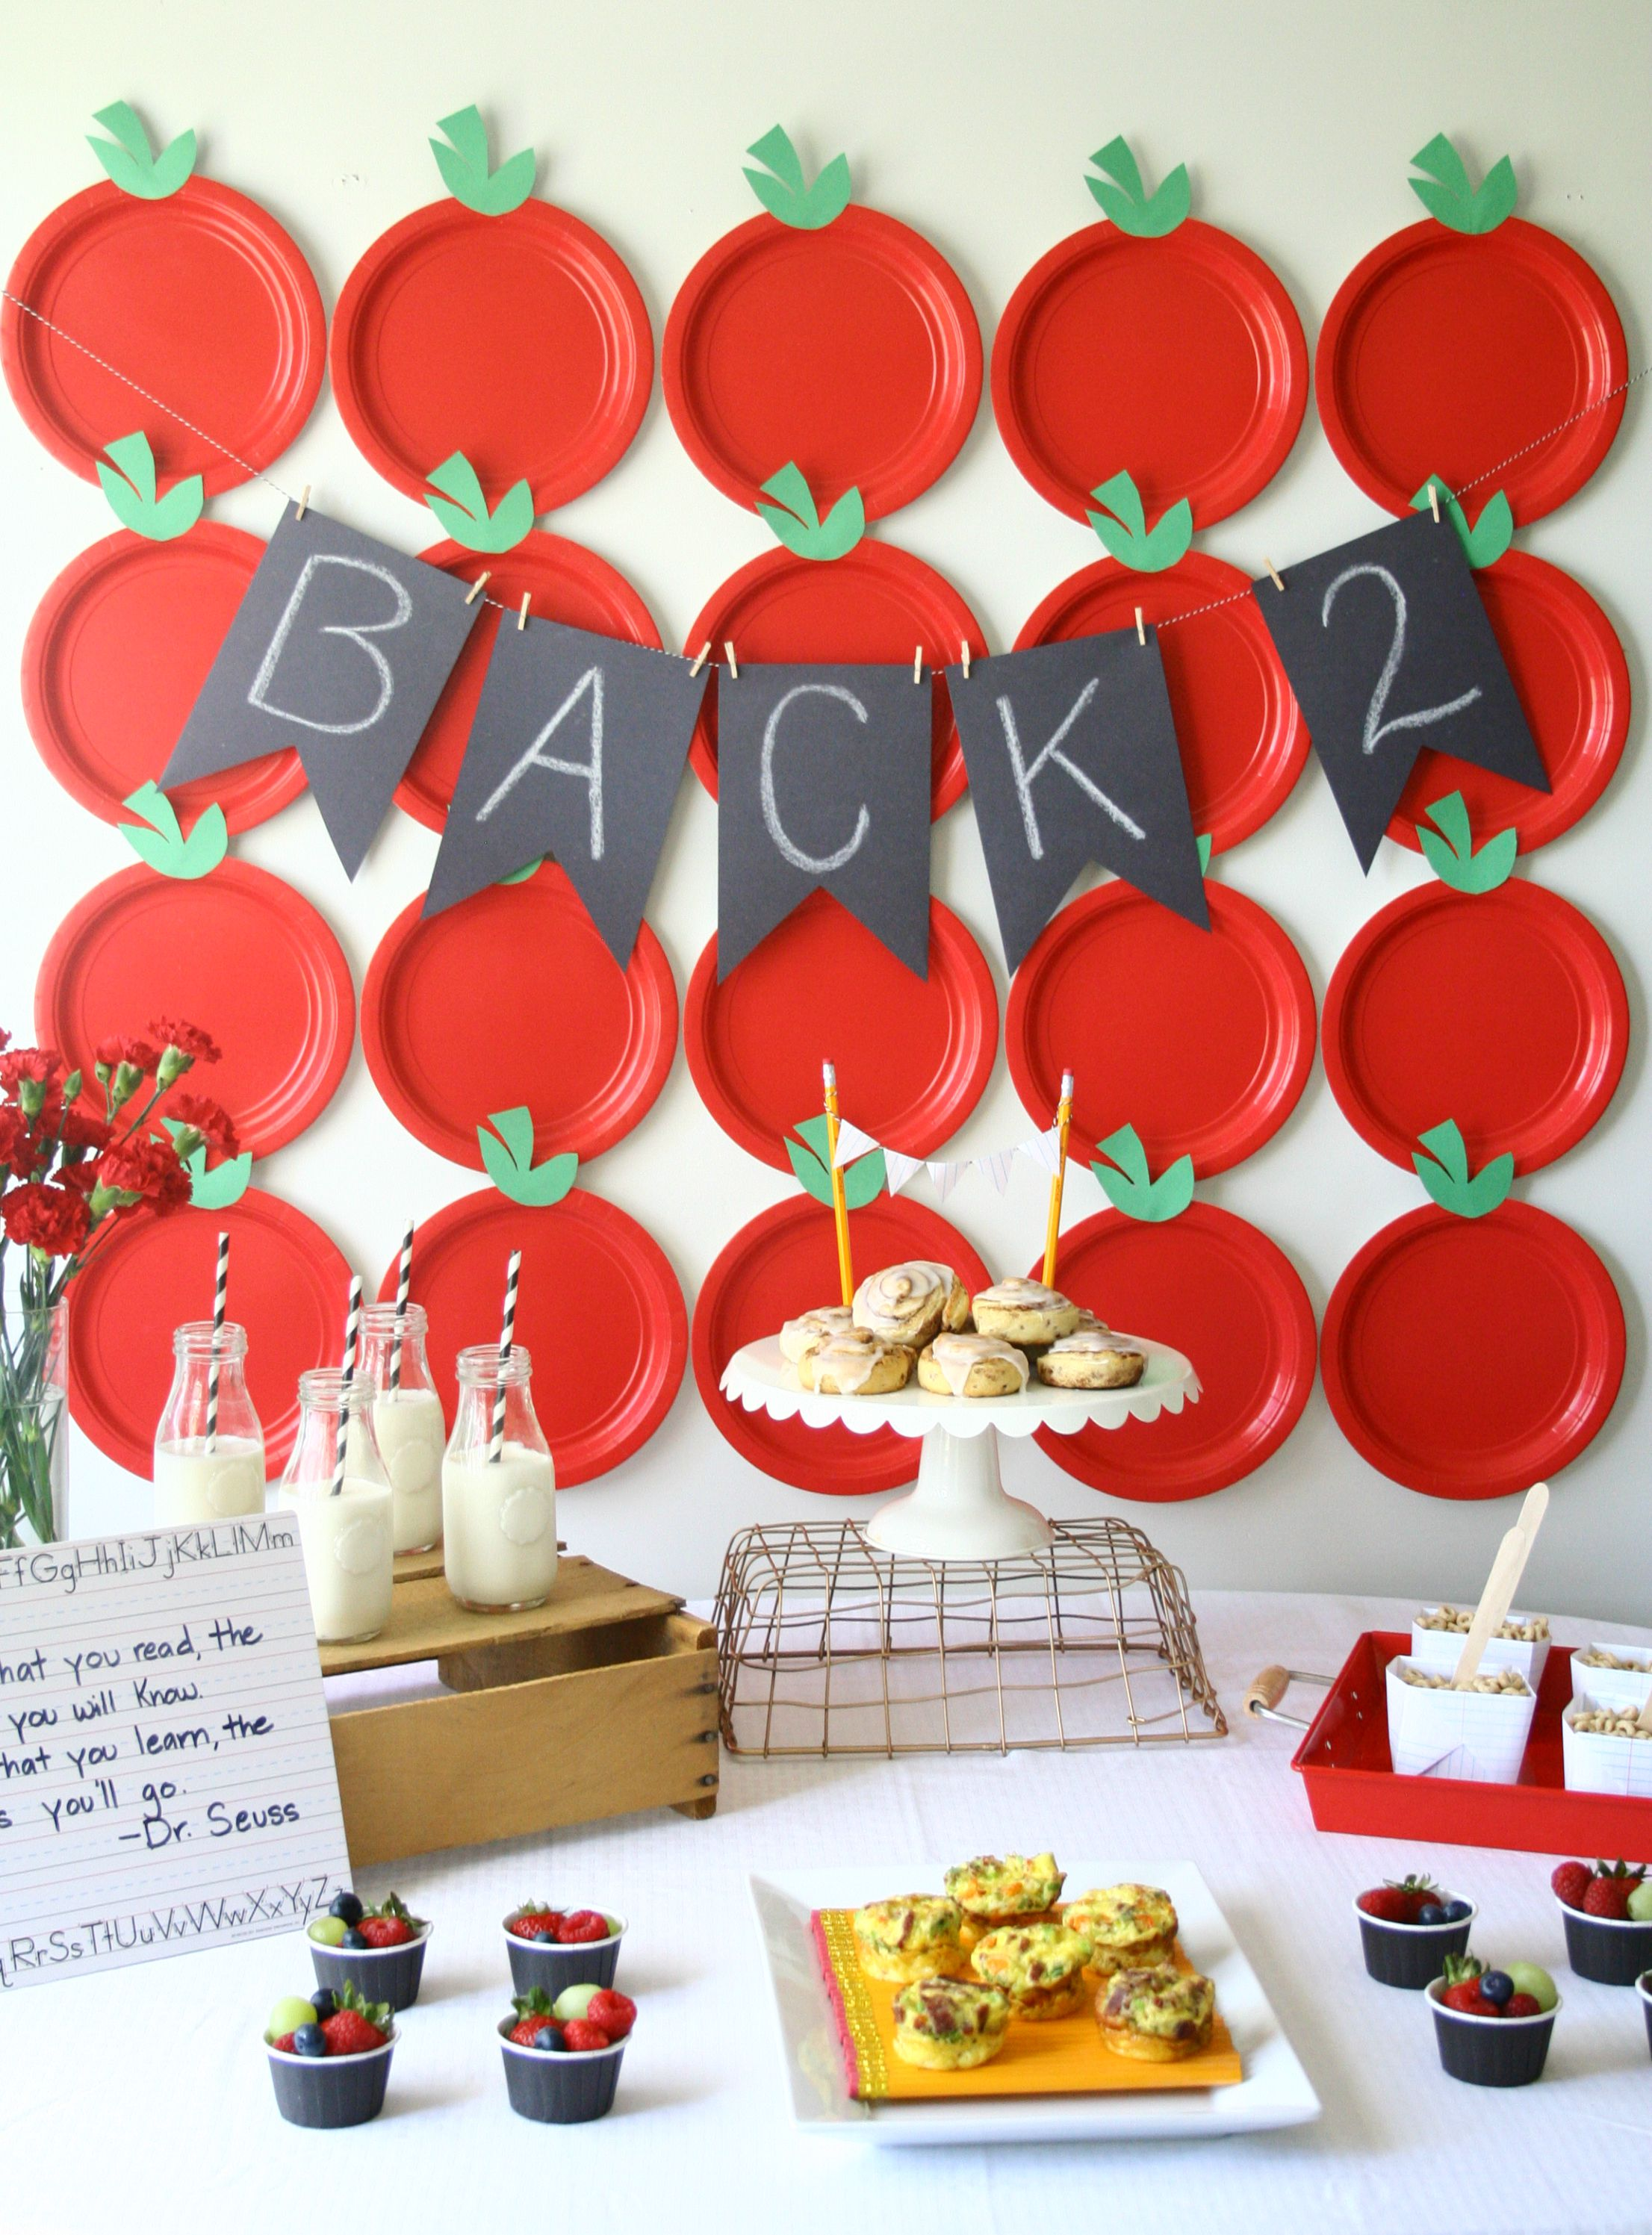 Delicious breakfast party to celebrate back to school with apple.